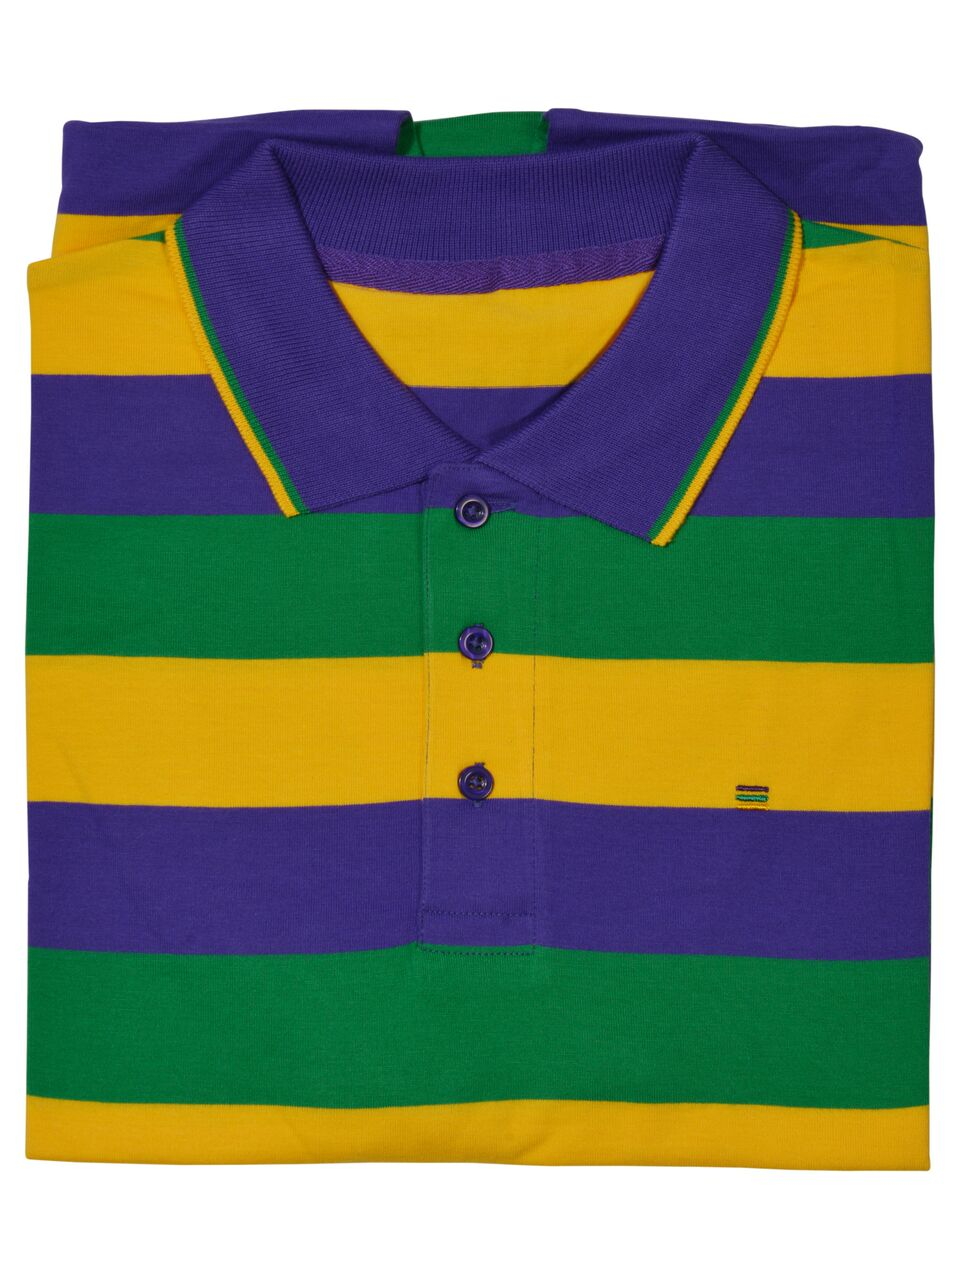 89df59e6 Purple Green Gold All Over Stripe Short Sleeve Adult Shirt – Mardi ...